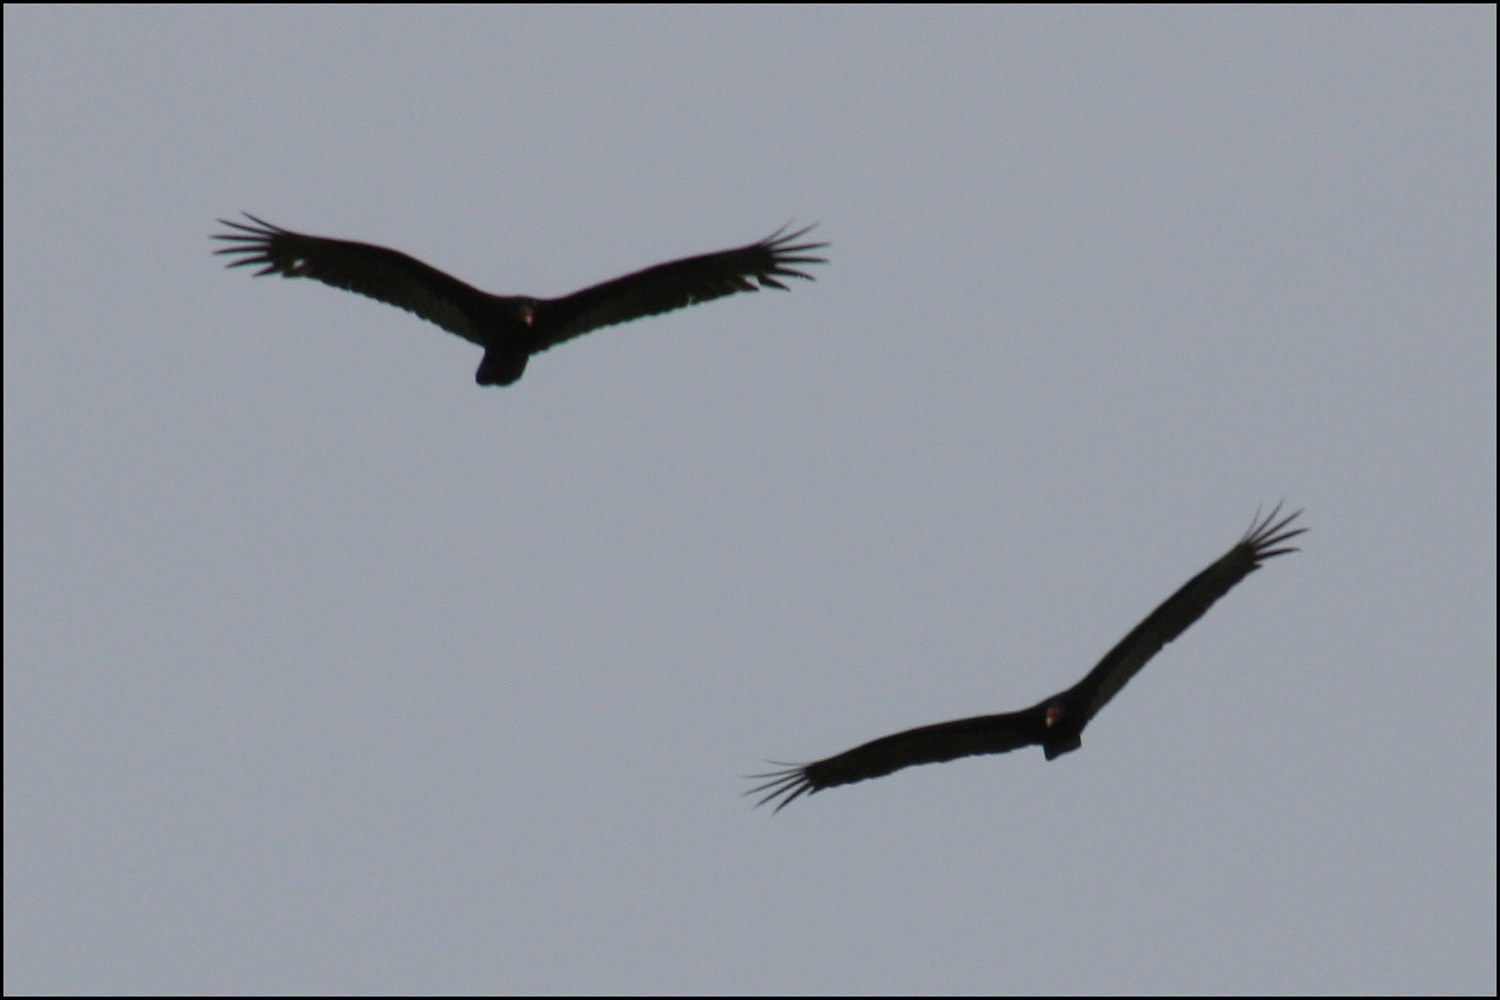 Turkey Vultures (Cathartes aura)